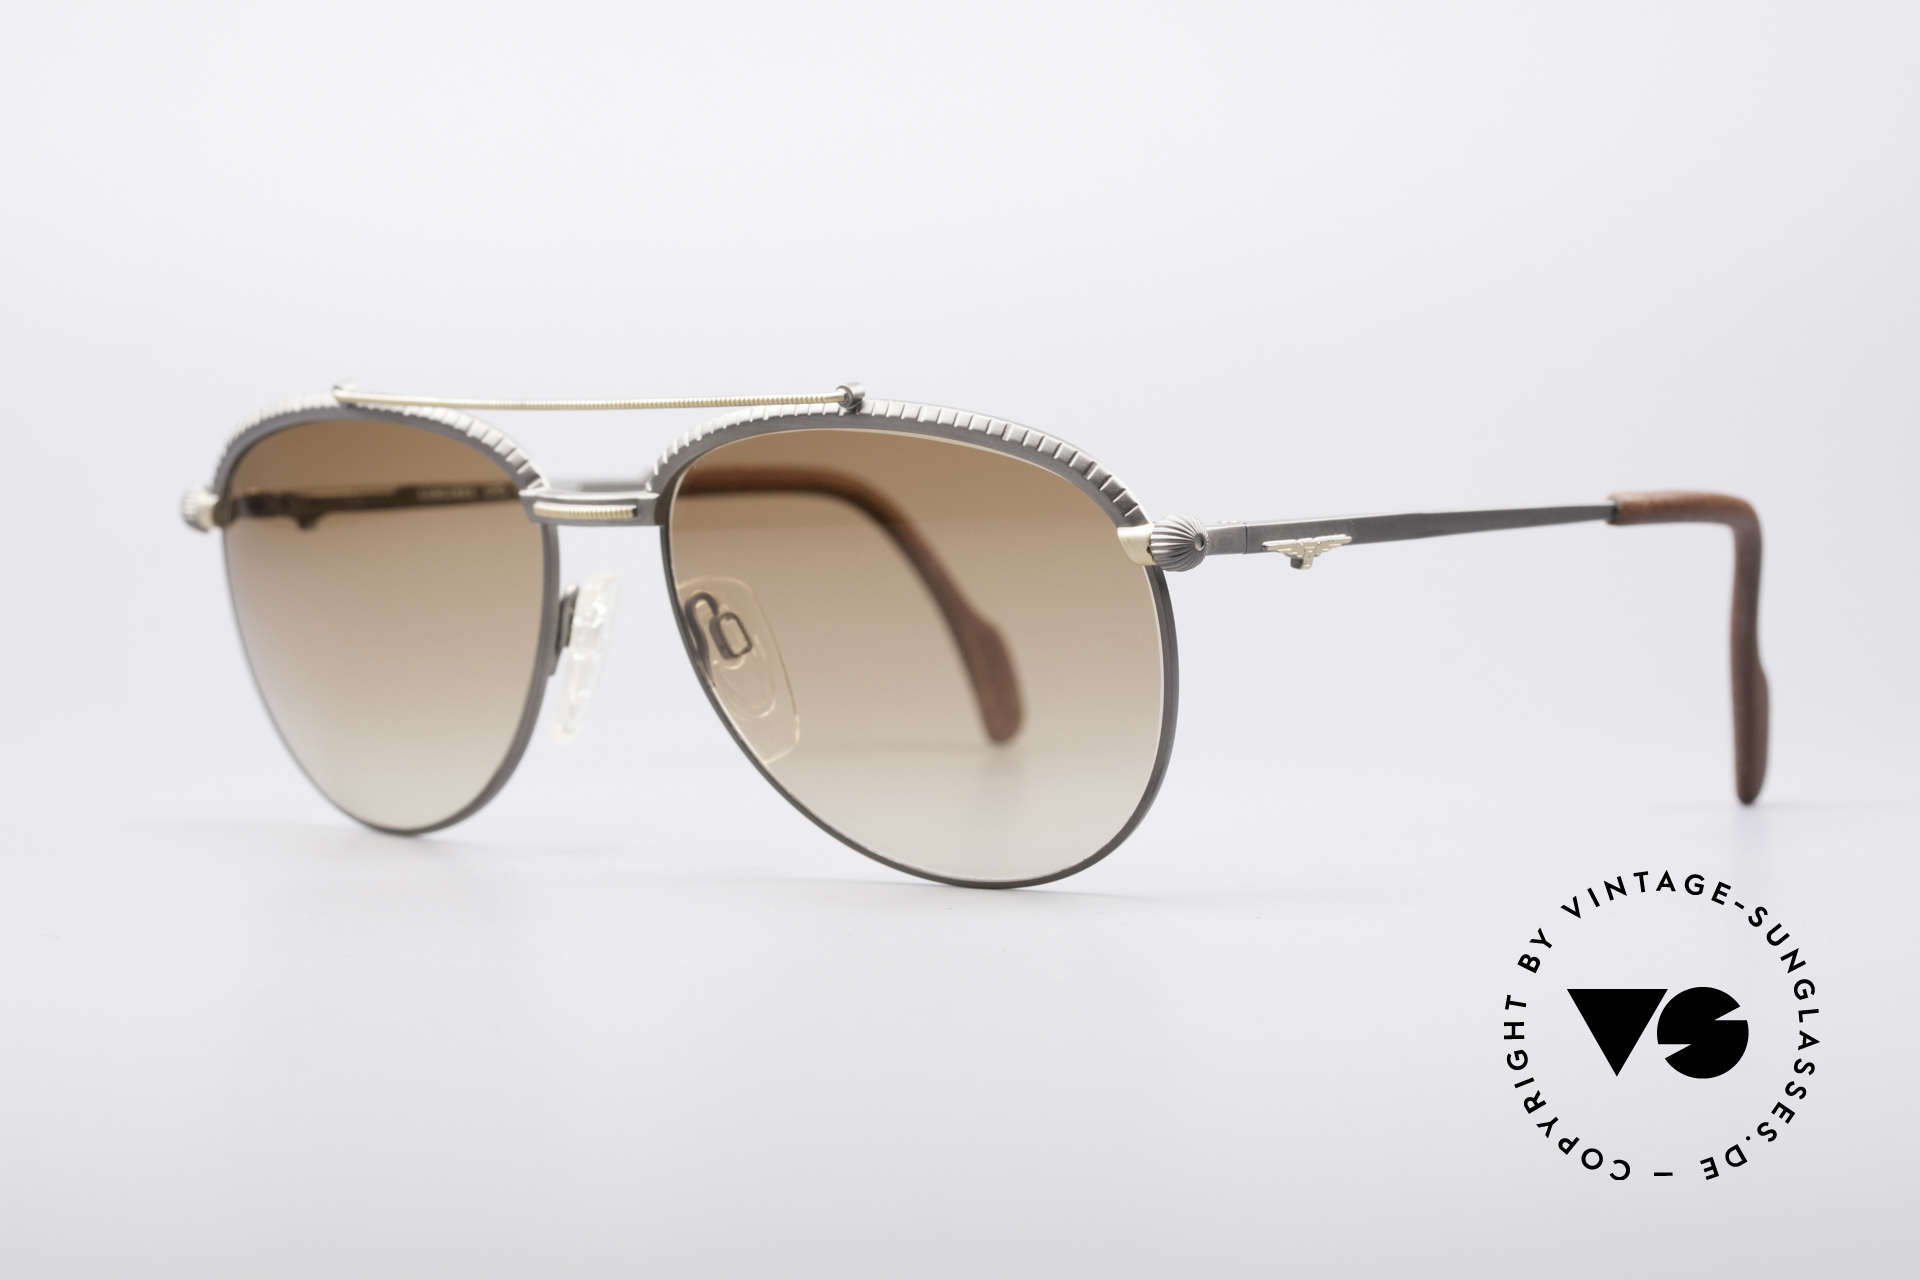 Longines 0161 80's Luxury Sunglasses, temple ends are covered with leather (1. class comfort), Made for Men